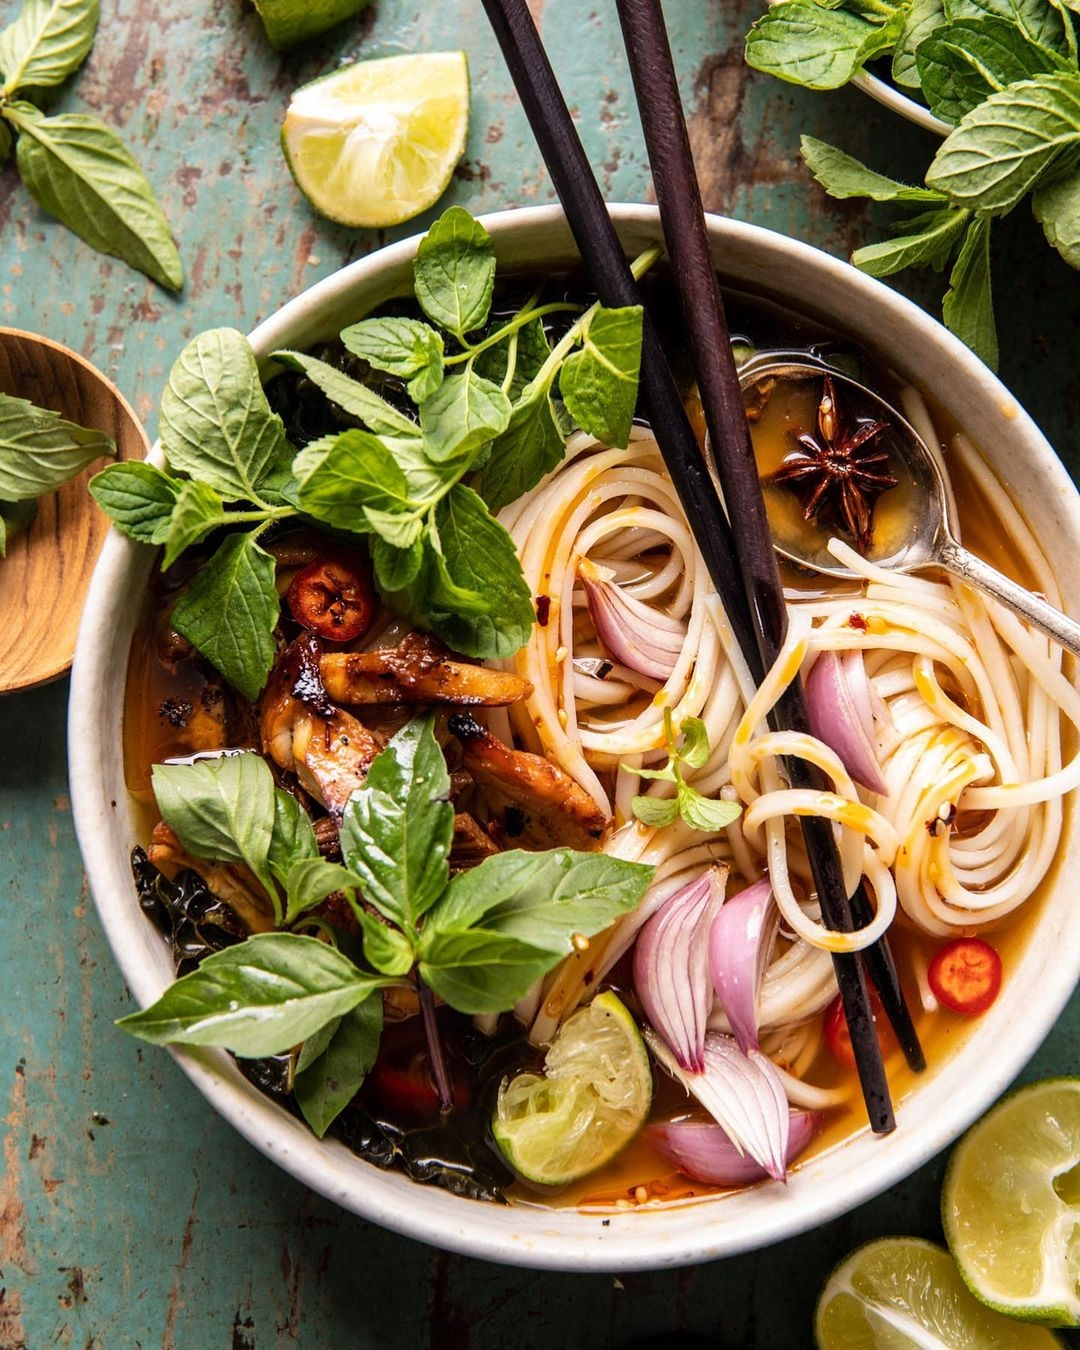 US food blogger criticized for misnaming noodle soup recipe 'pho'